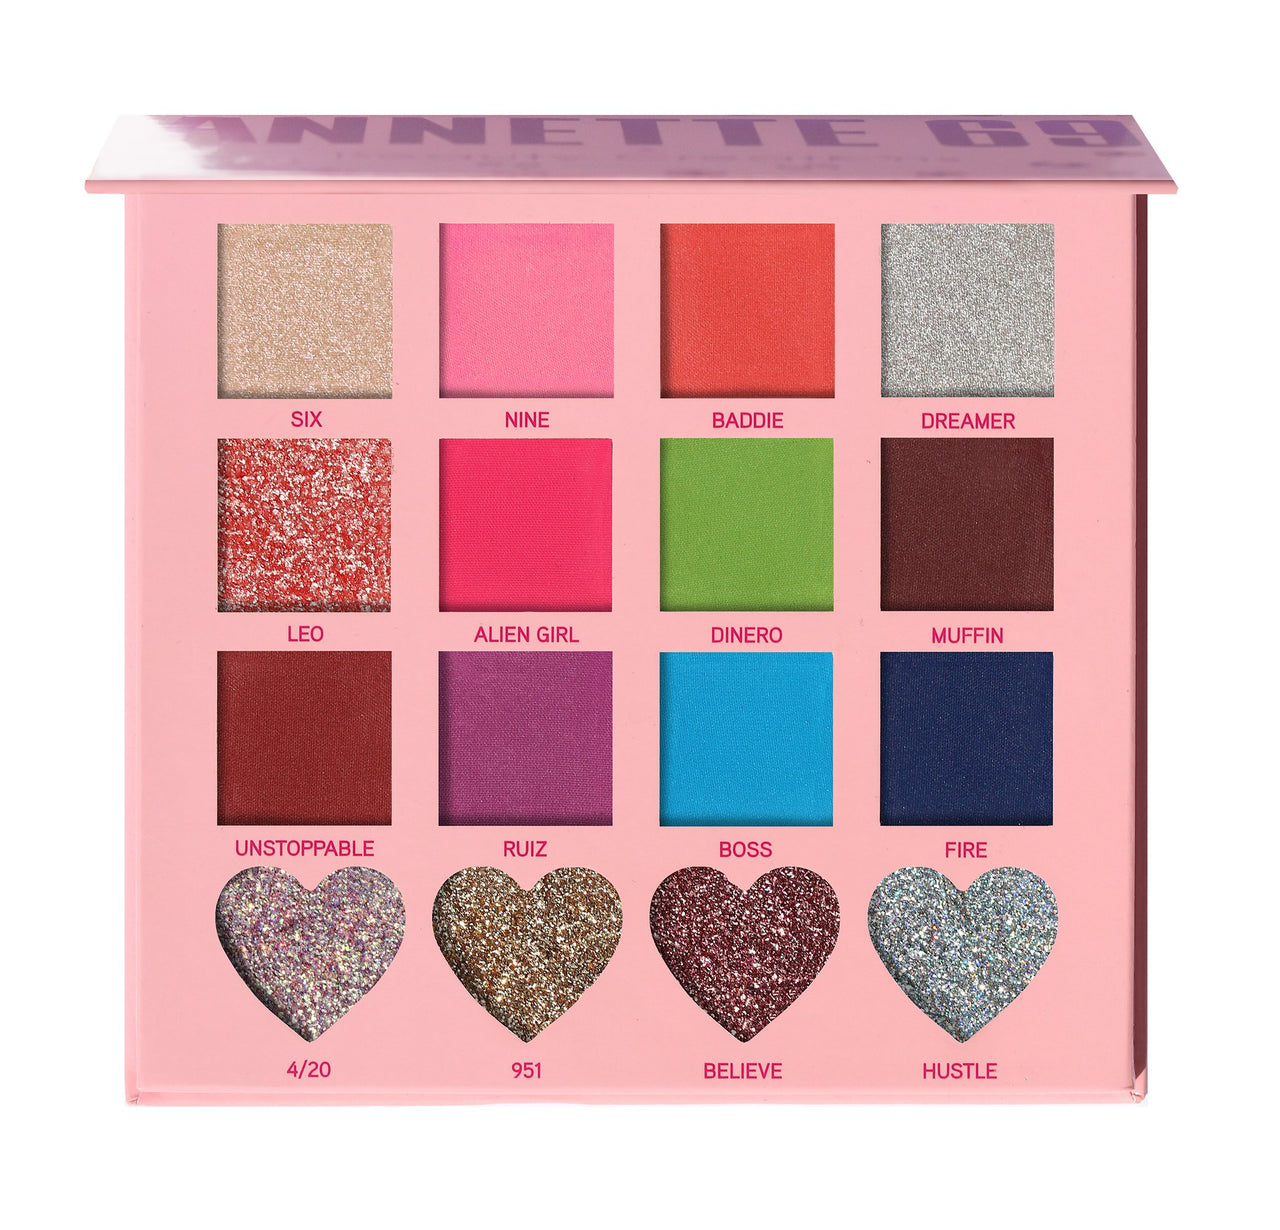 AE16 : Beauty Creations Annette69 Eyeshadow Palette Wholesale-Cosmeticholic